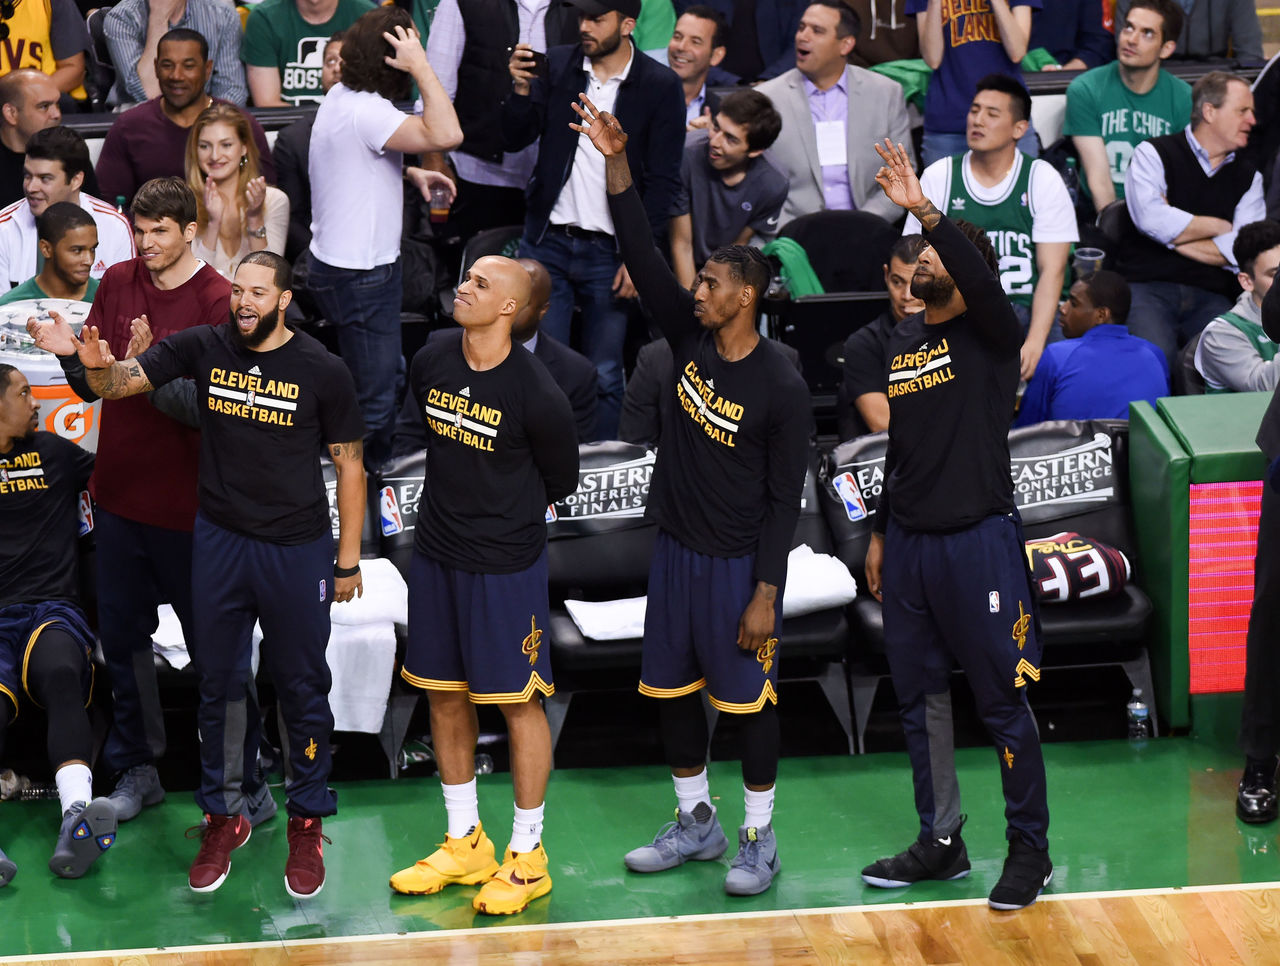 Cropped 2017 05 26t023711z 88857035 nocid rtrmadp 3 nba playoffs cleveland cavaliers at boston celtics